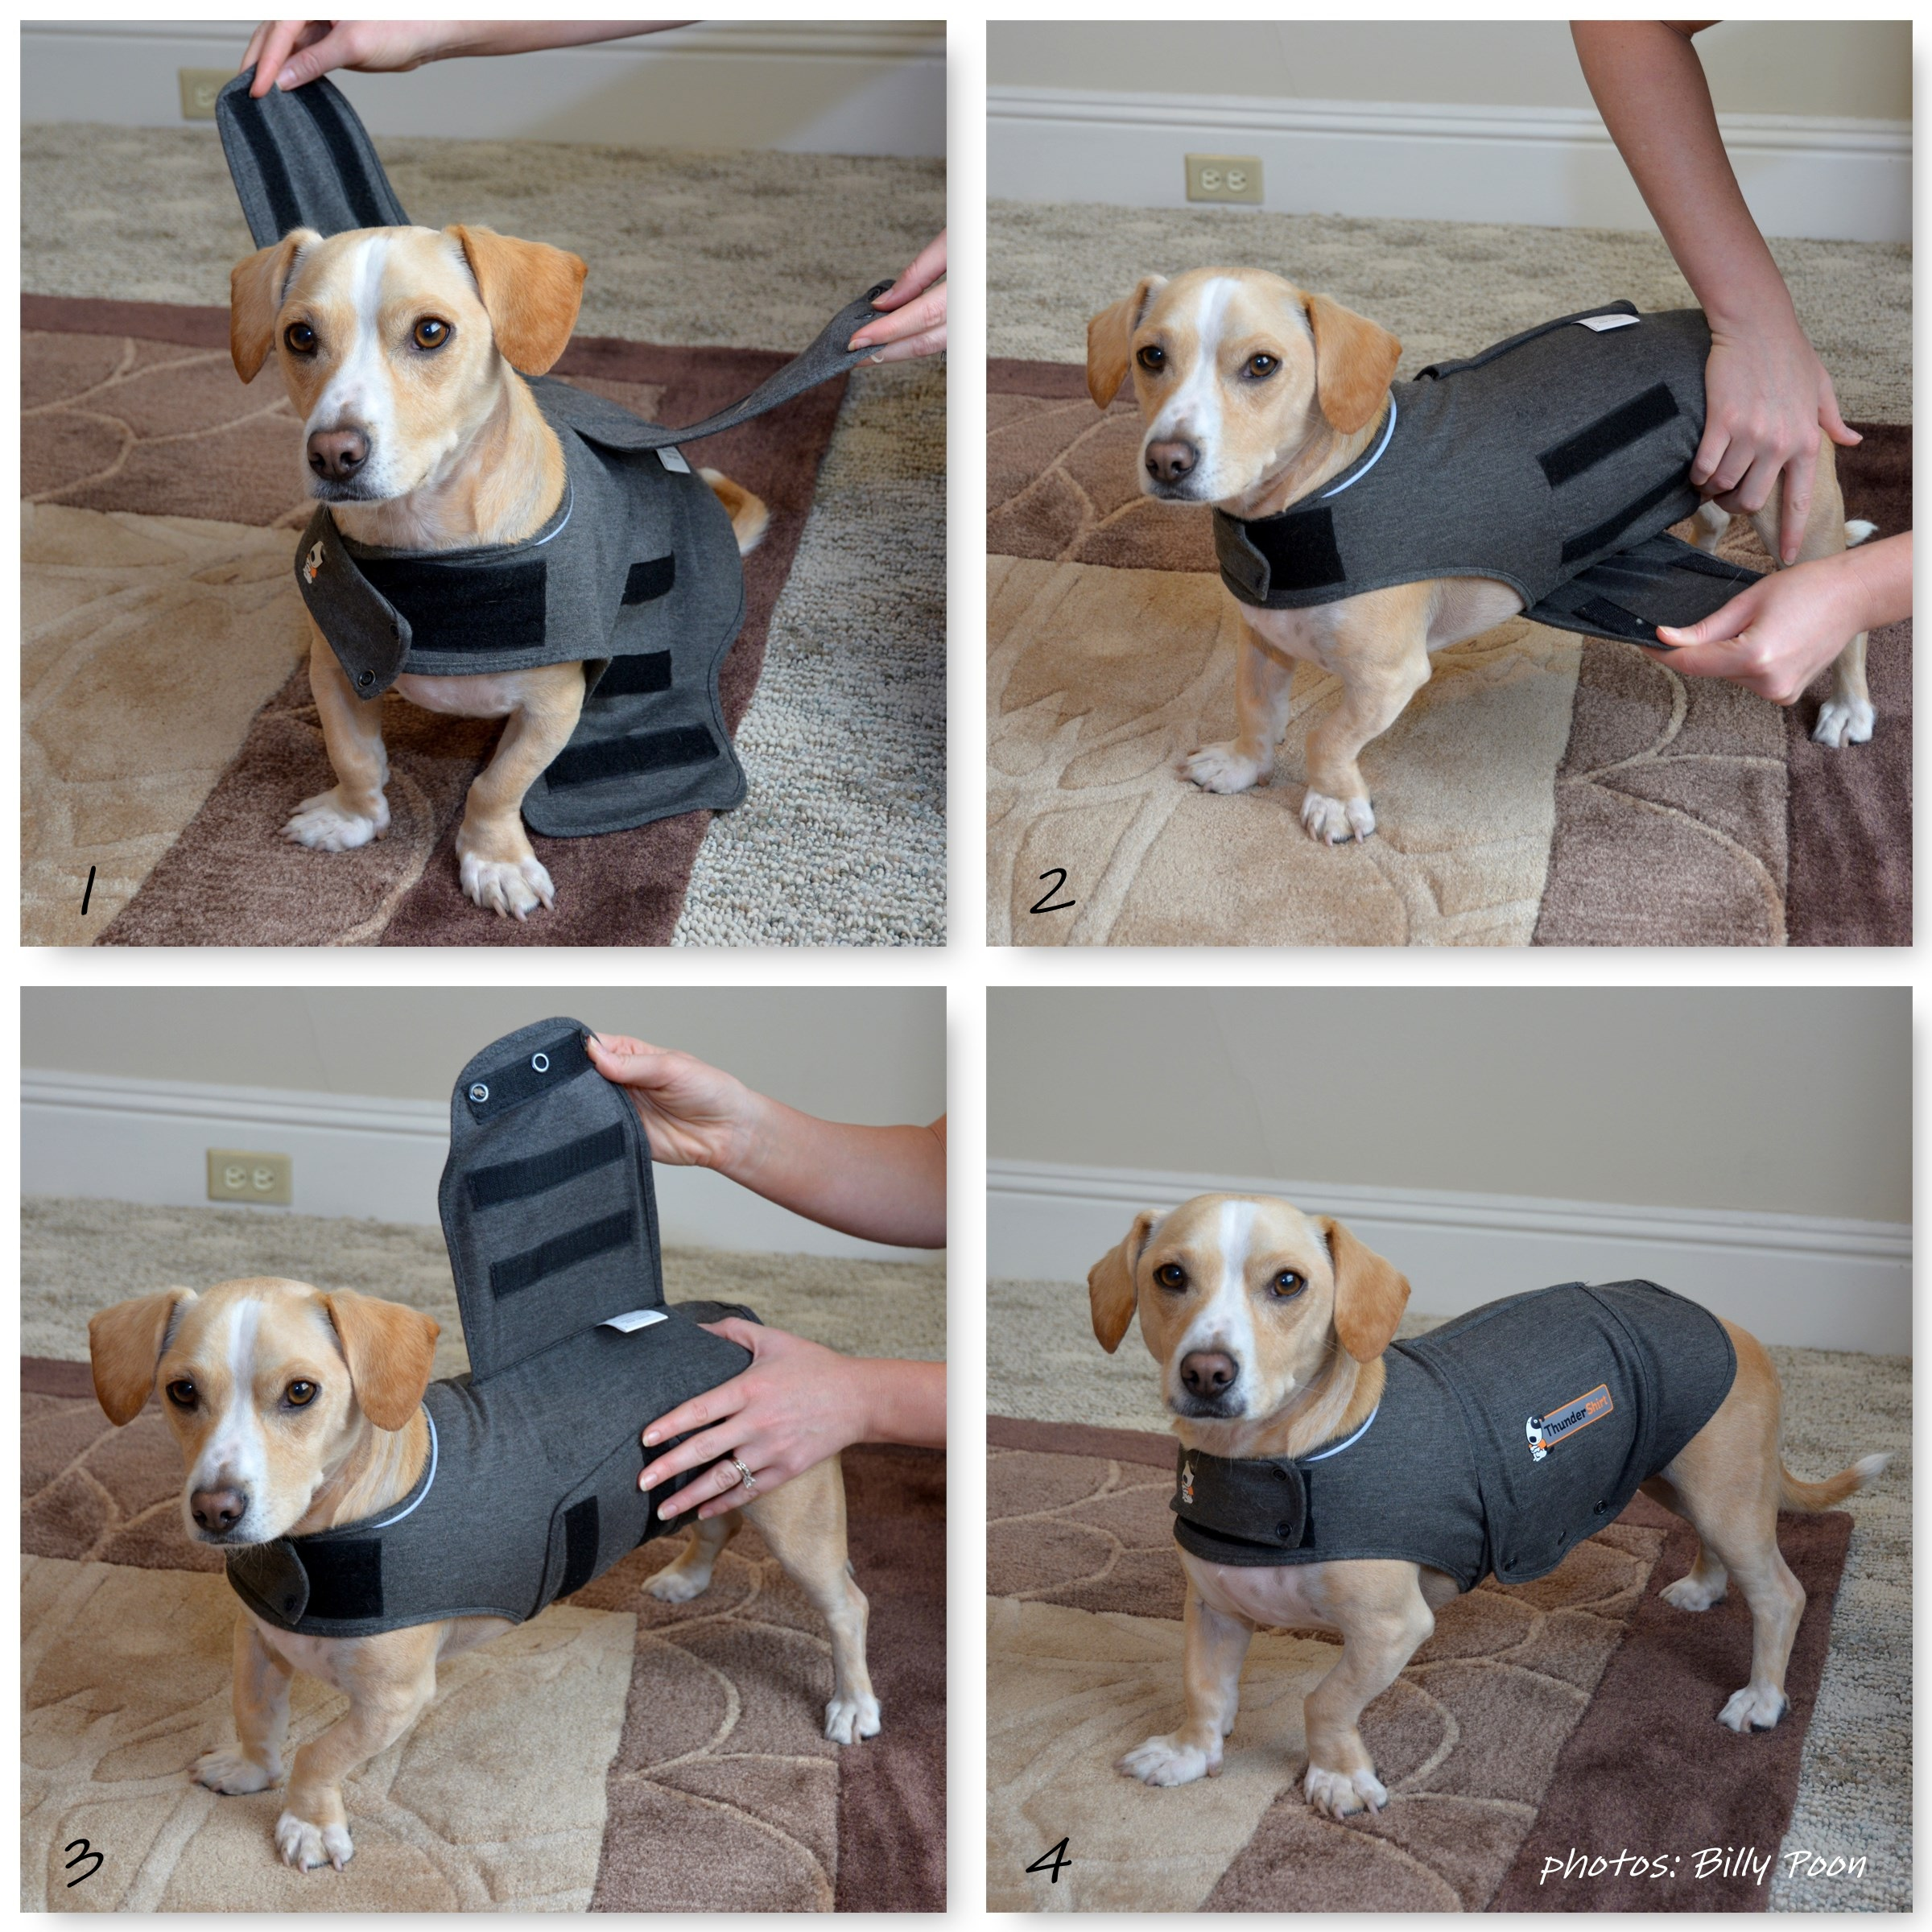 Do thundershirts for dogs really work